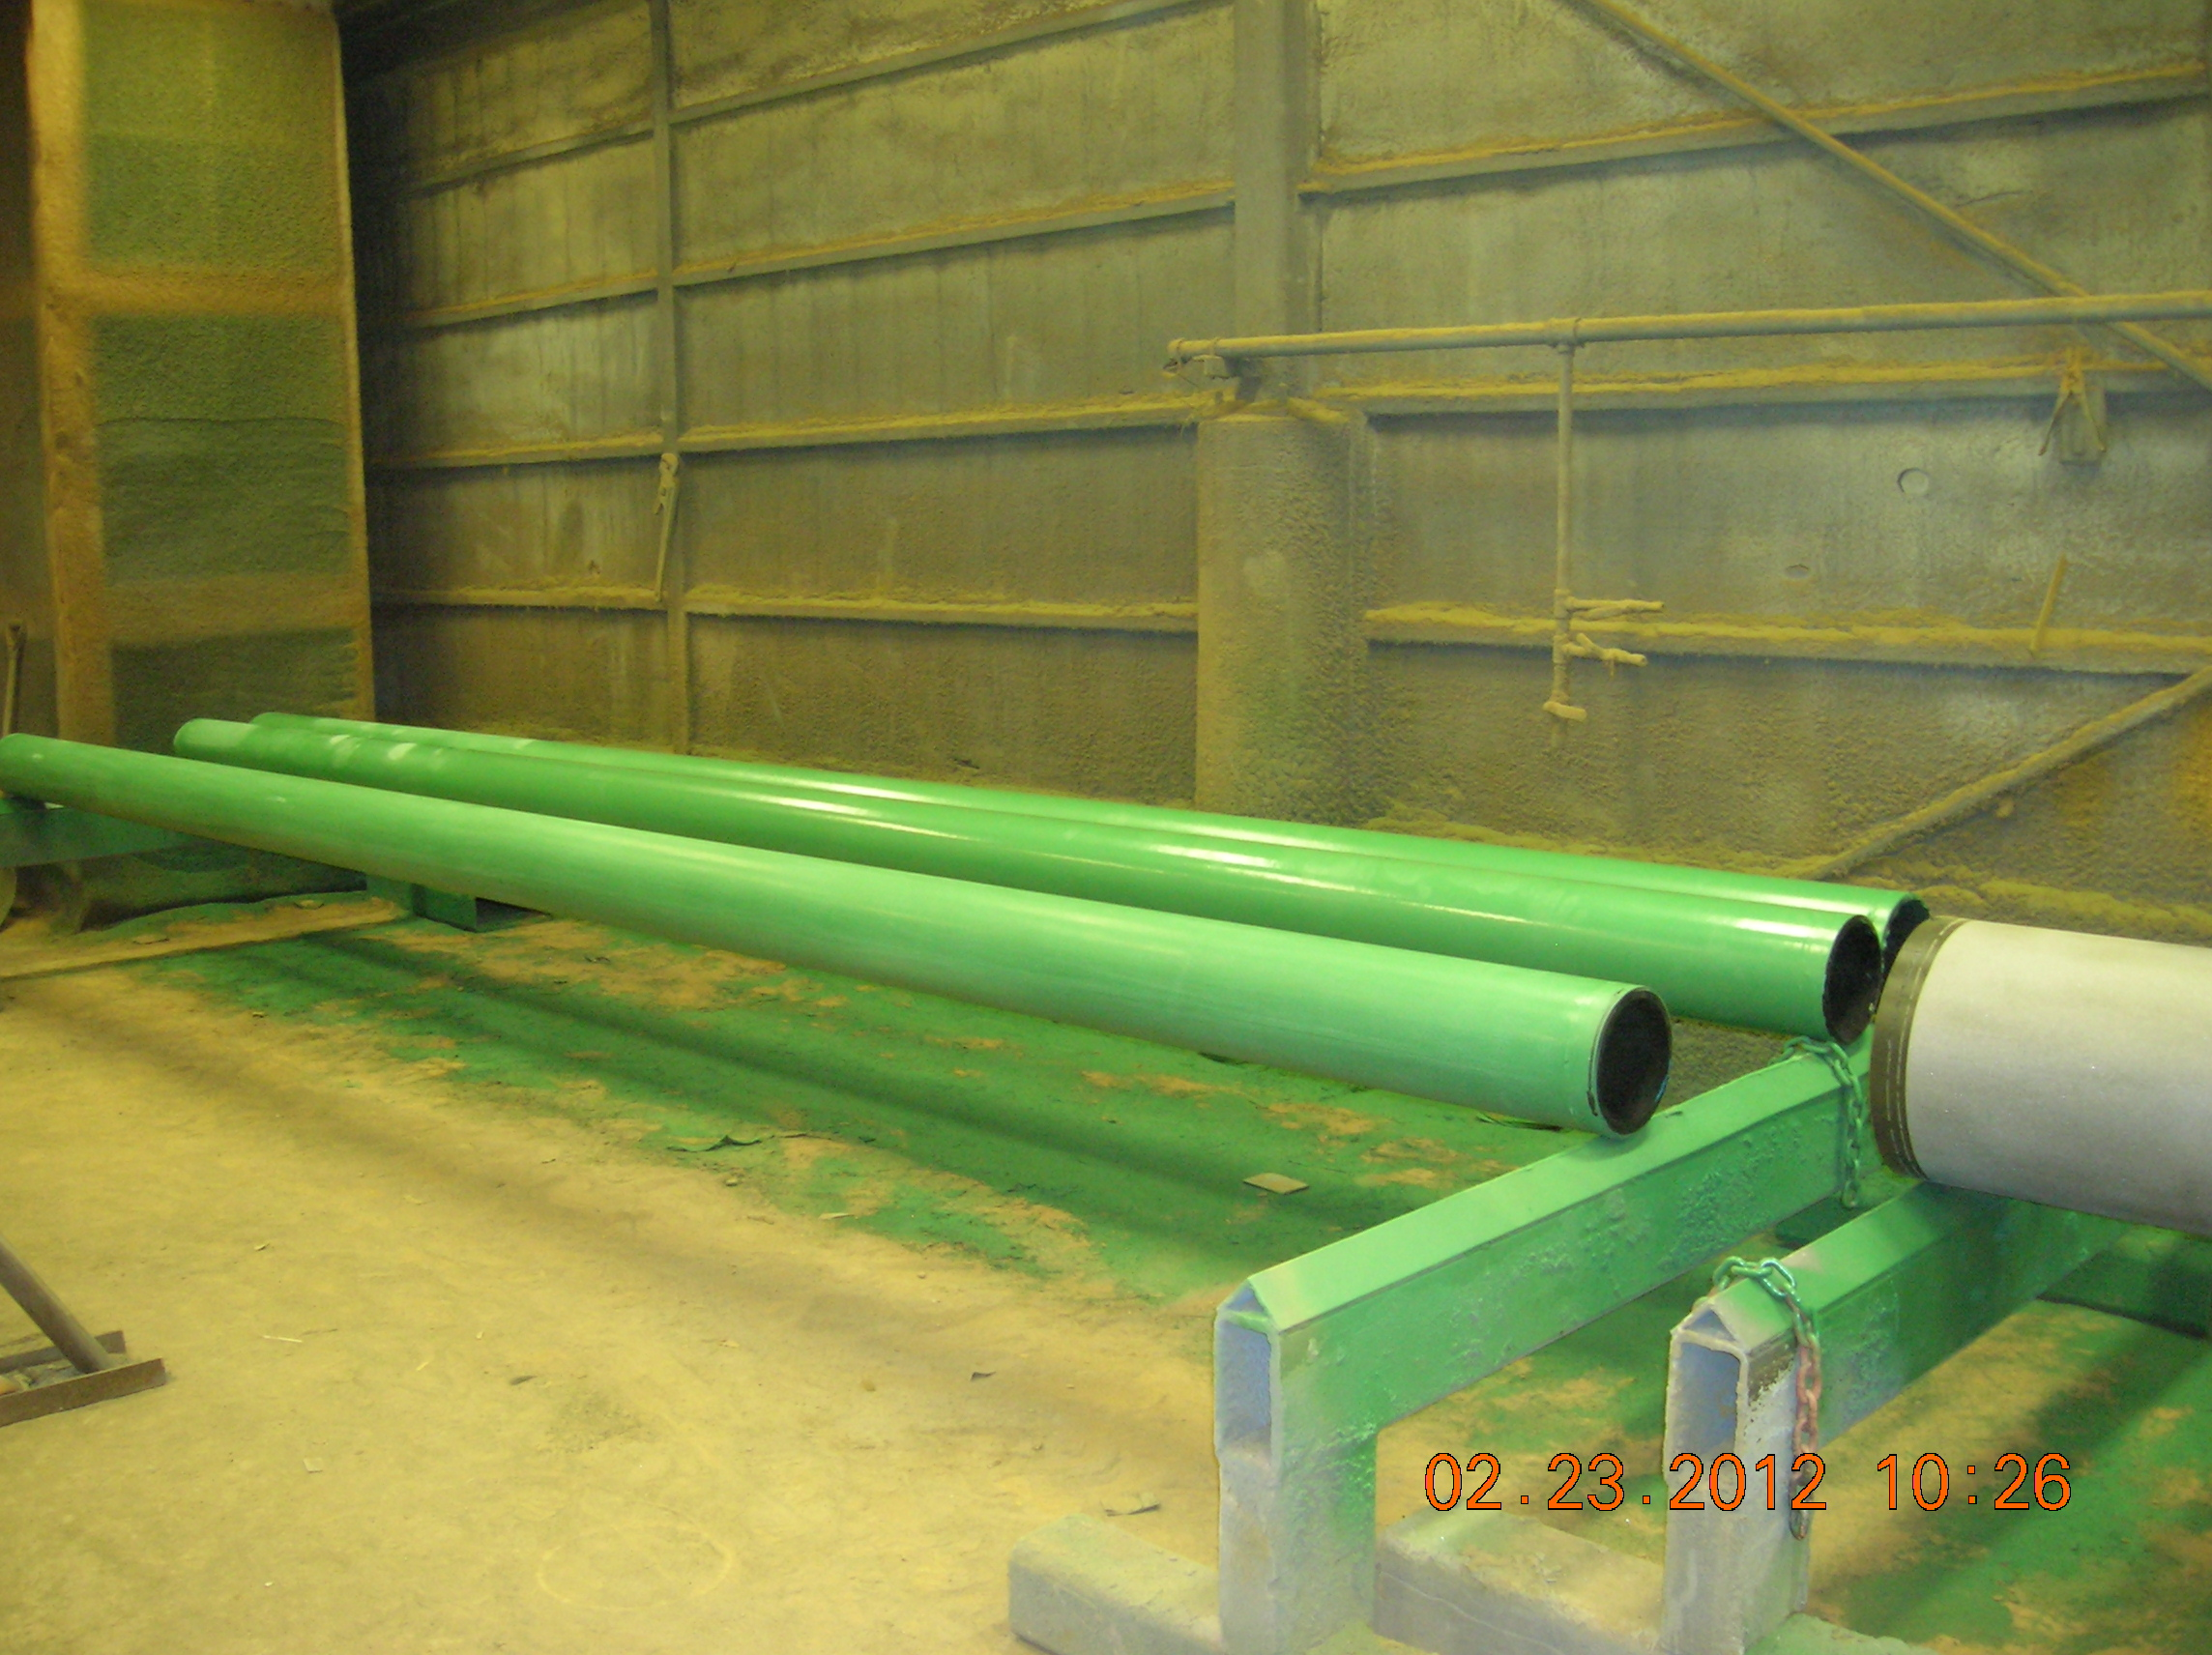 Tips for Selecting an Industrial Equipment Painting Supplier